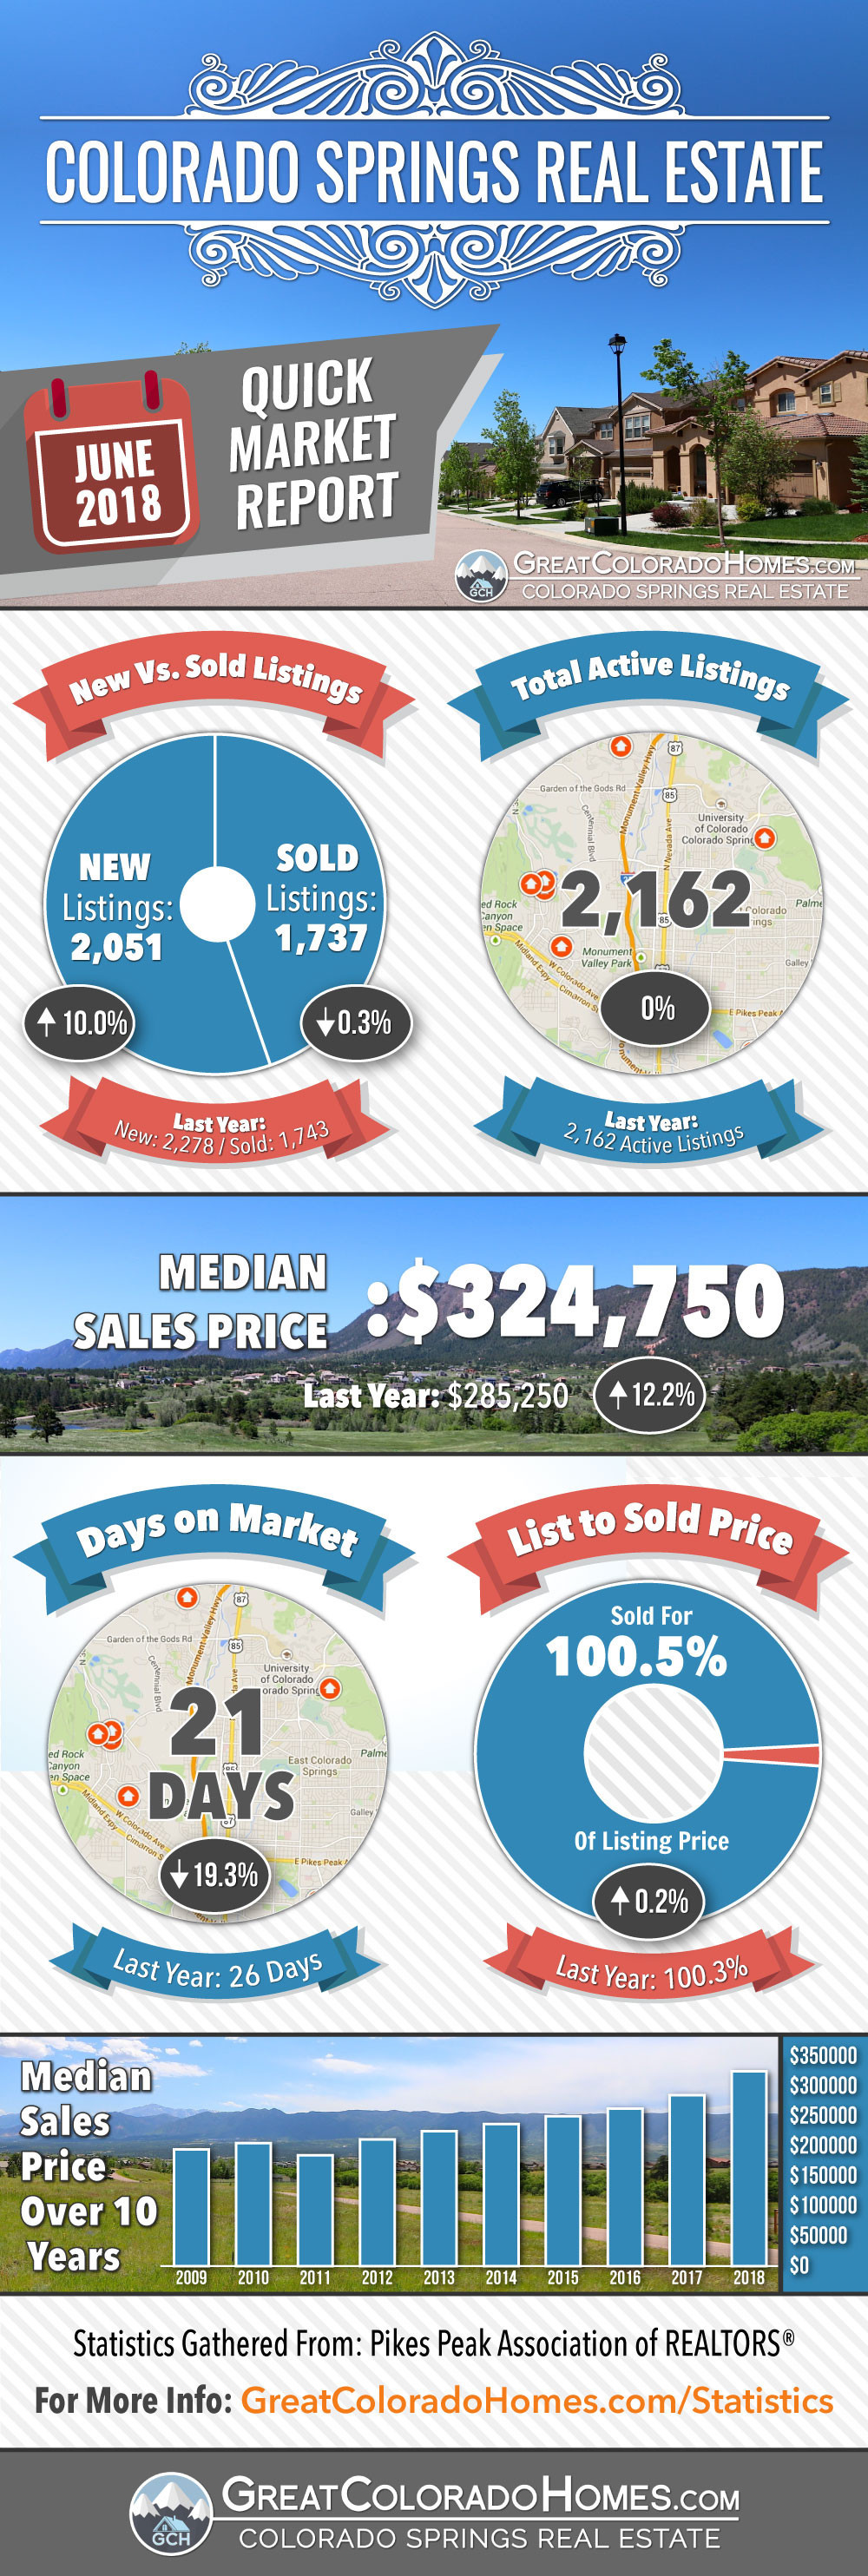 June 2018 Colorado Springs Real Estate Market Statistics Infographic